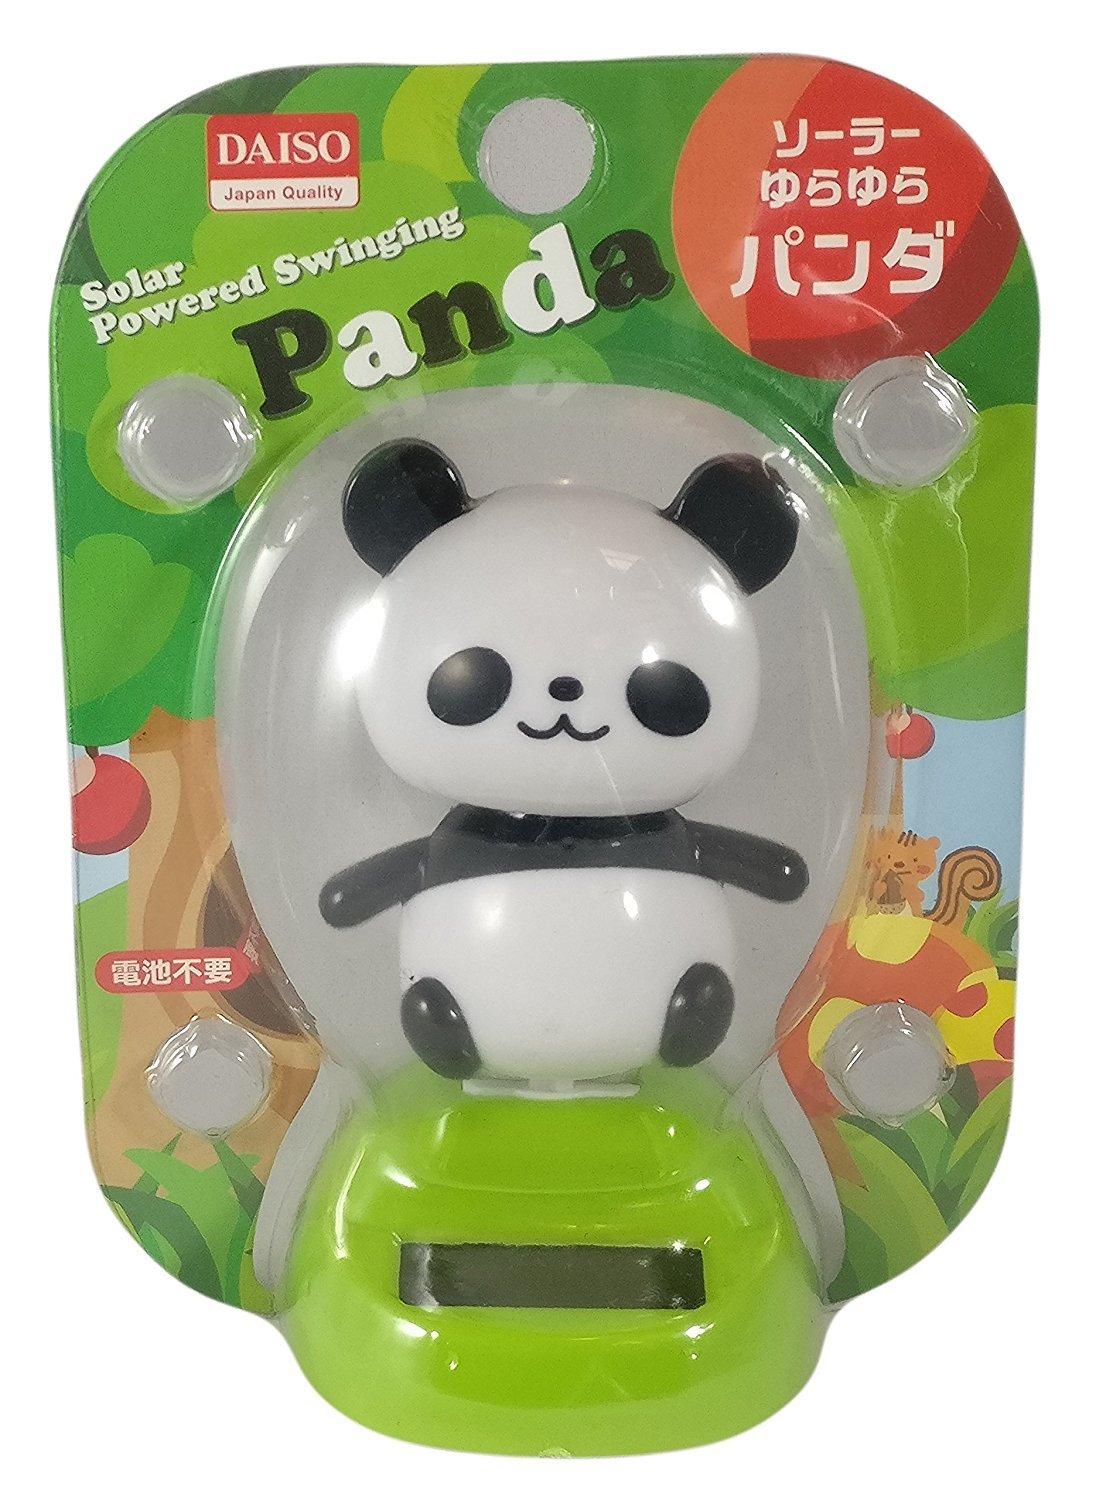 Japanese Quality Solar Powered Swinging Panda Bobblehead Daiso